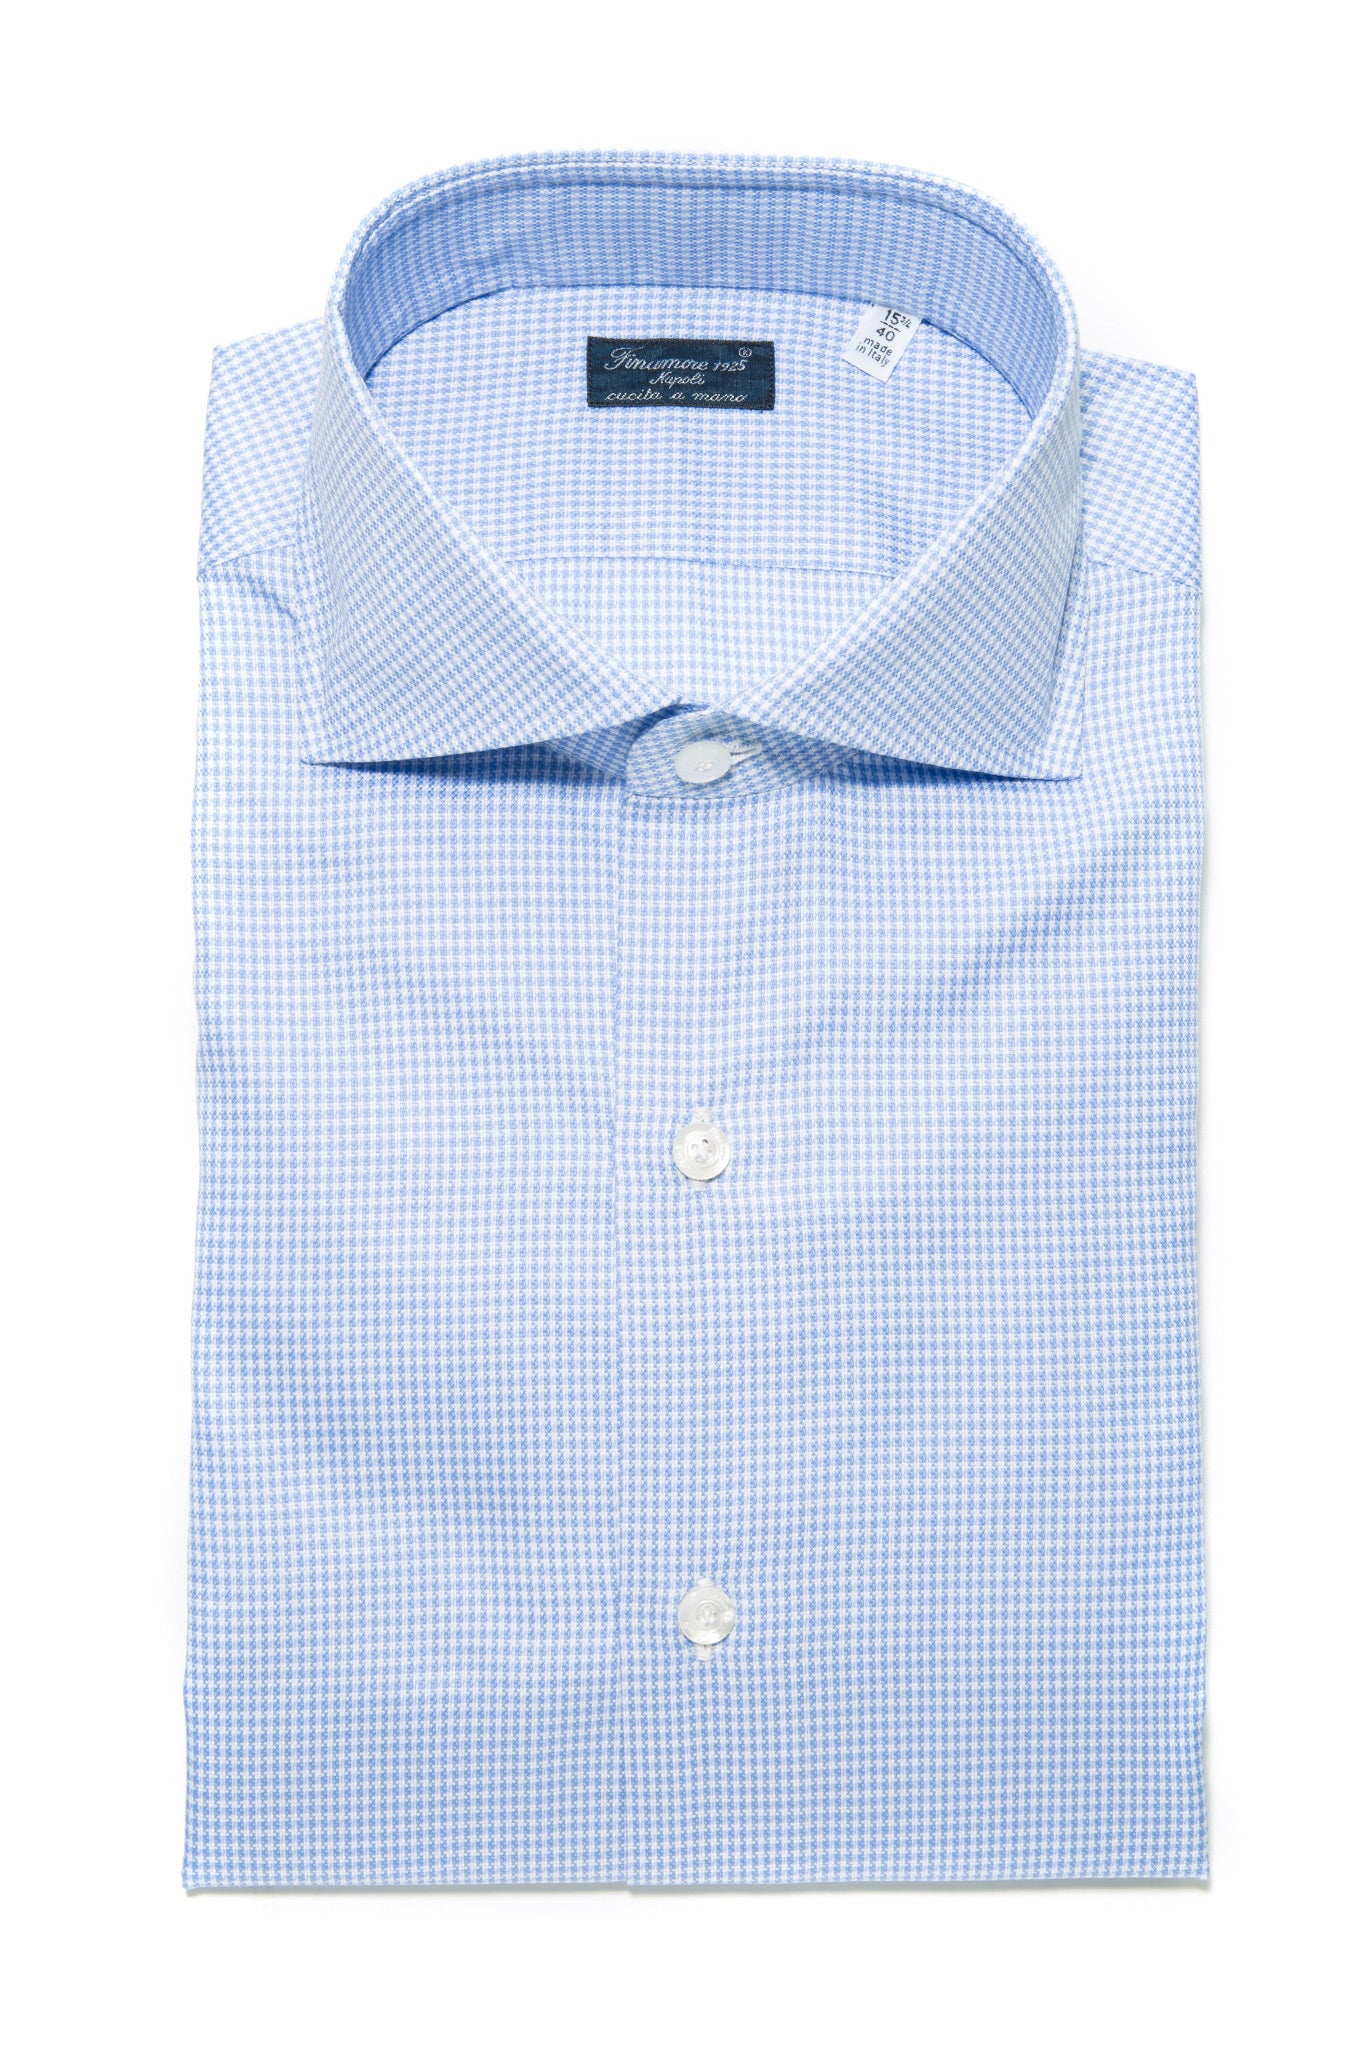 Finamore Bernandino Houndstooth Dress Shirt (321127809048)